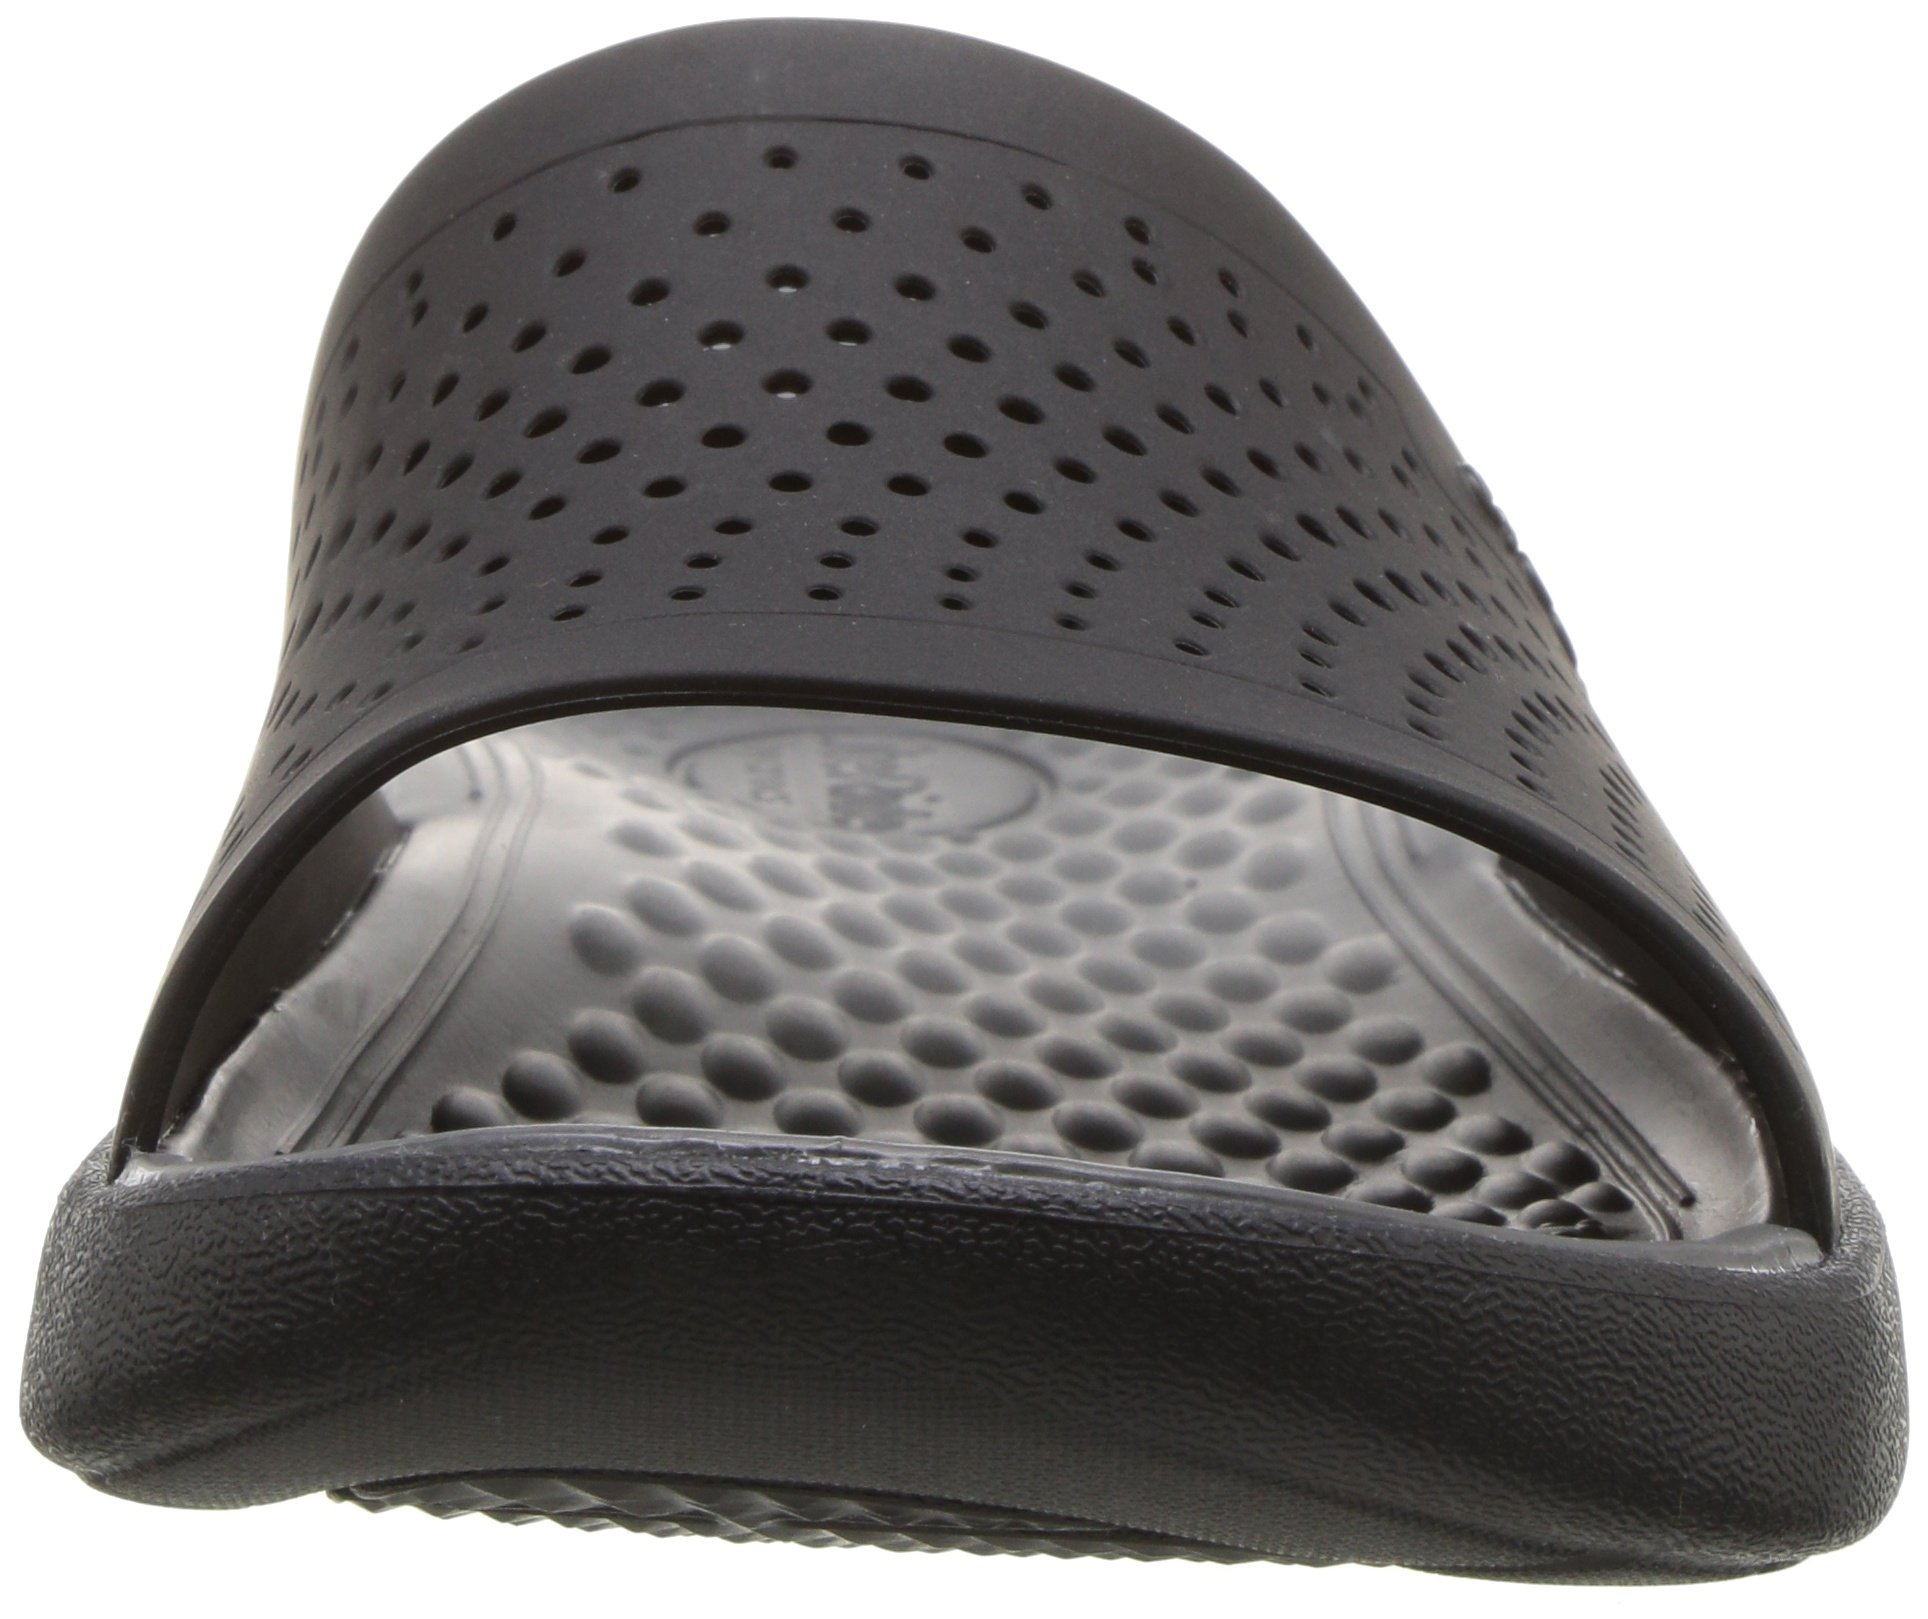 Crocs Unisex-Adults Literide Slide Sandal, Black/Slate Grey, 8 US Men/10 US Women by Crocs (Image #4)